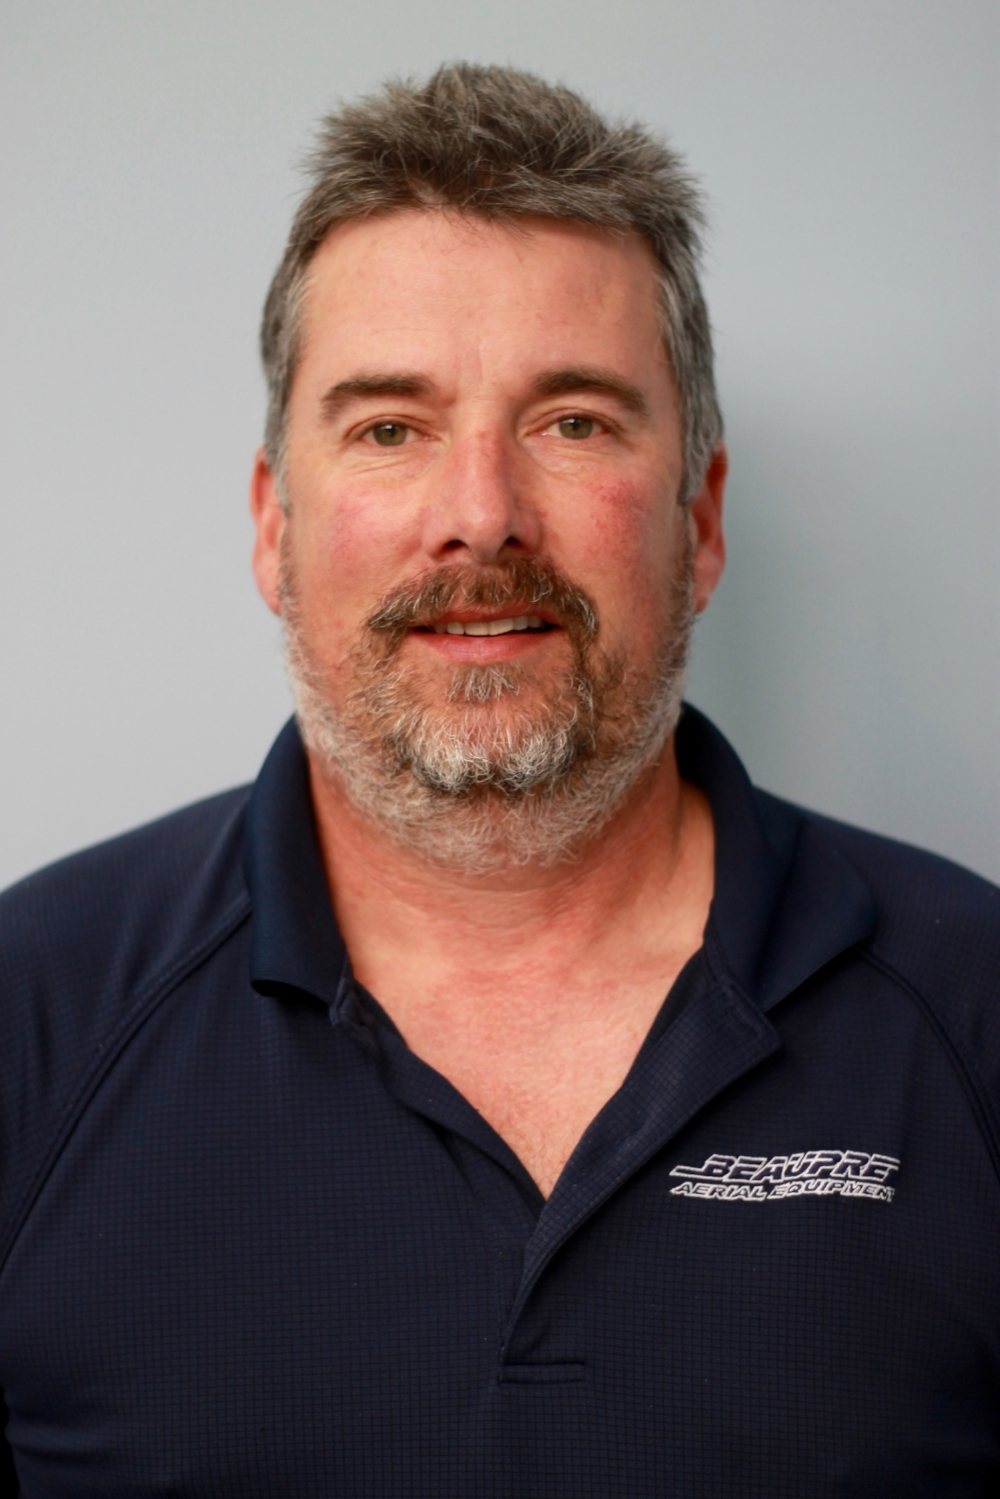 BILL STEINMAN - BEAUPRE EQUIPMENT SERVICES MANAGERbsteinman@beaupre-inc.com